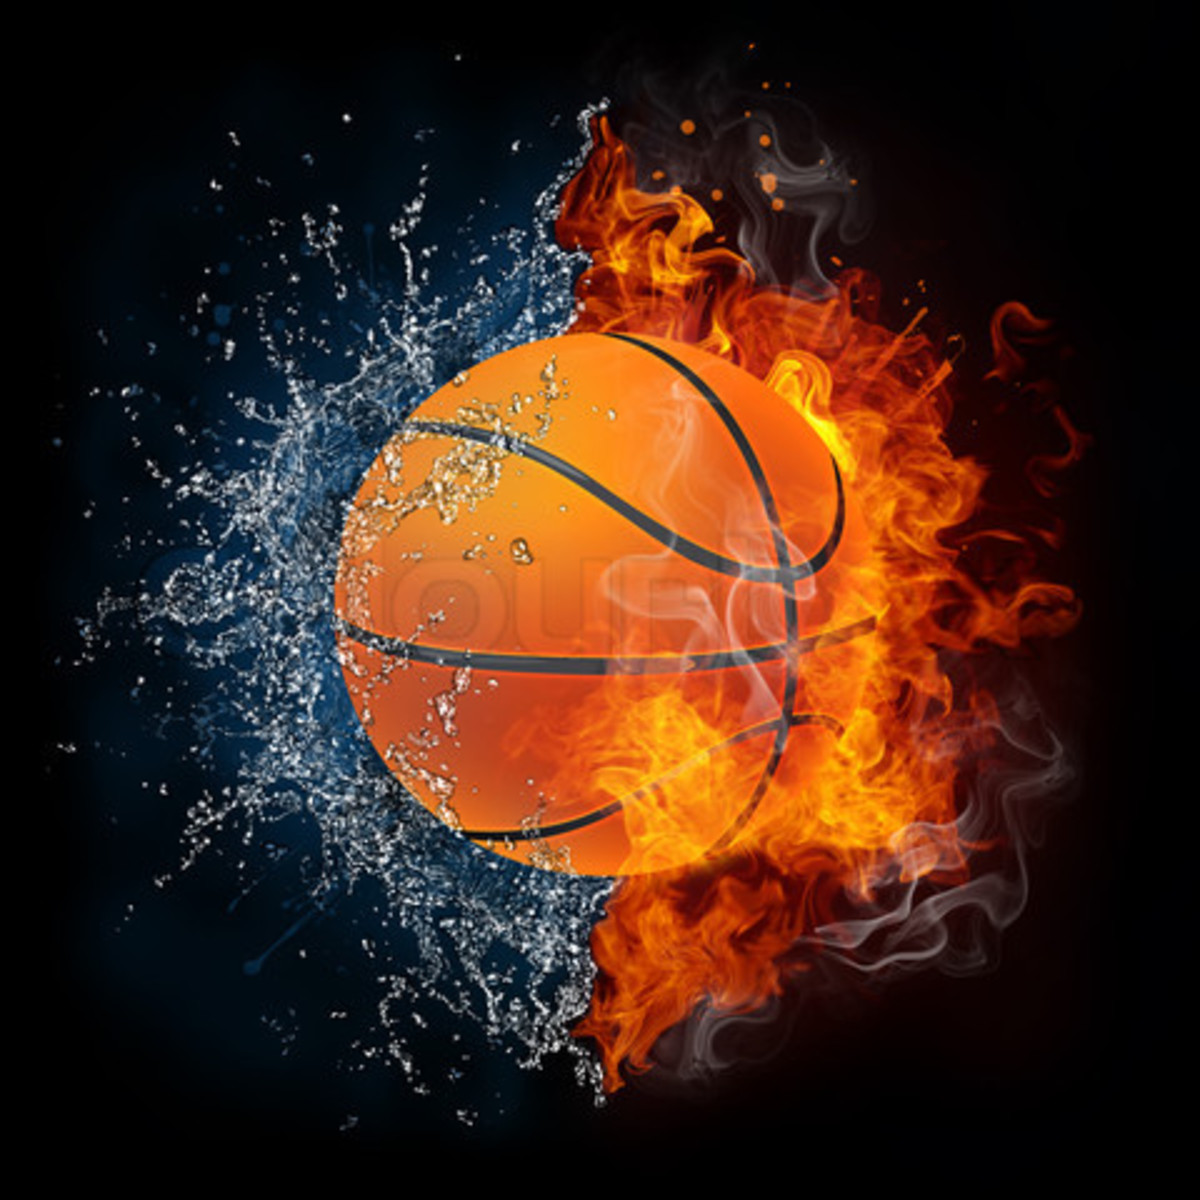 Basketball Ball in Fire and Water Isolated on the Black Background